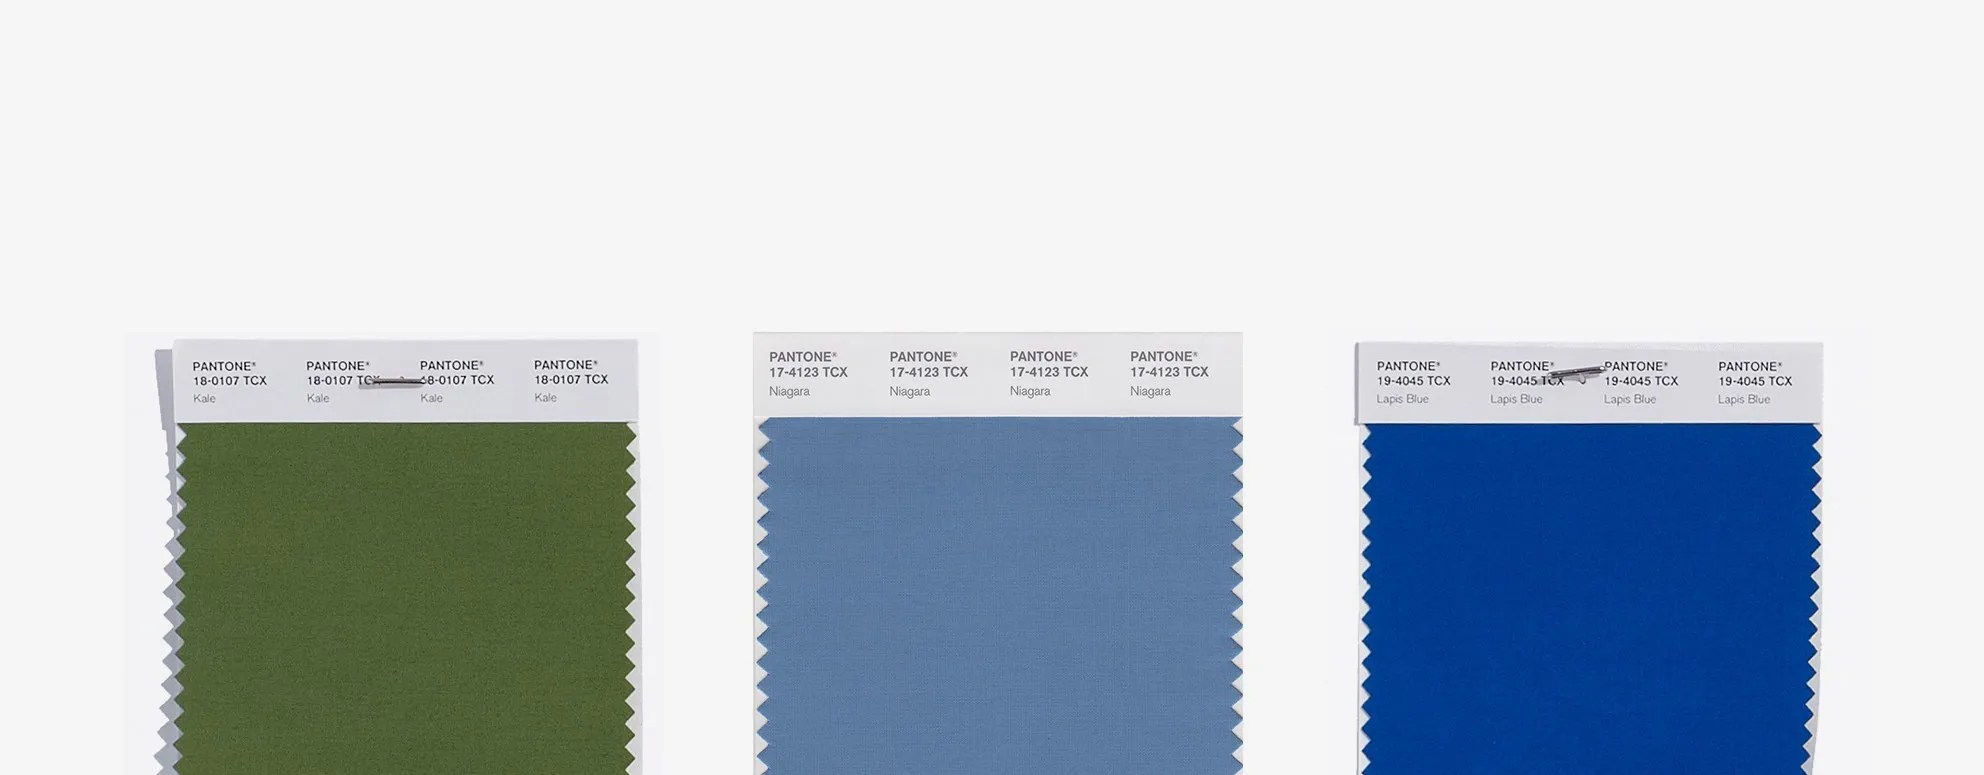 Pantone 2017 The Colors From Pantone S 2017 Report Are Already In Your Closet Gq